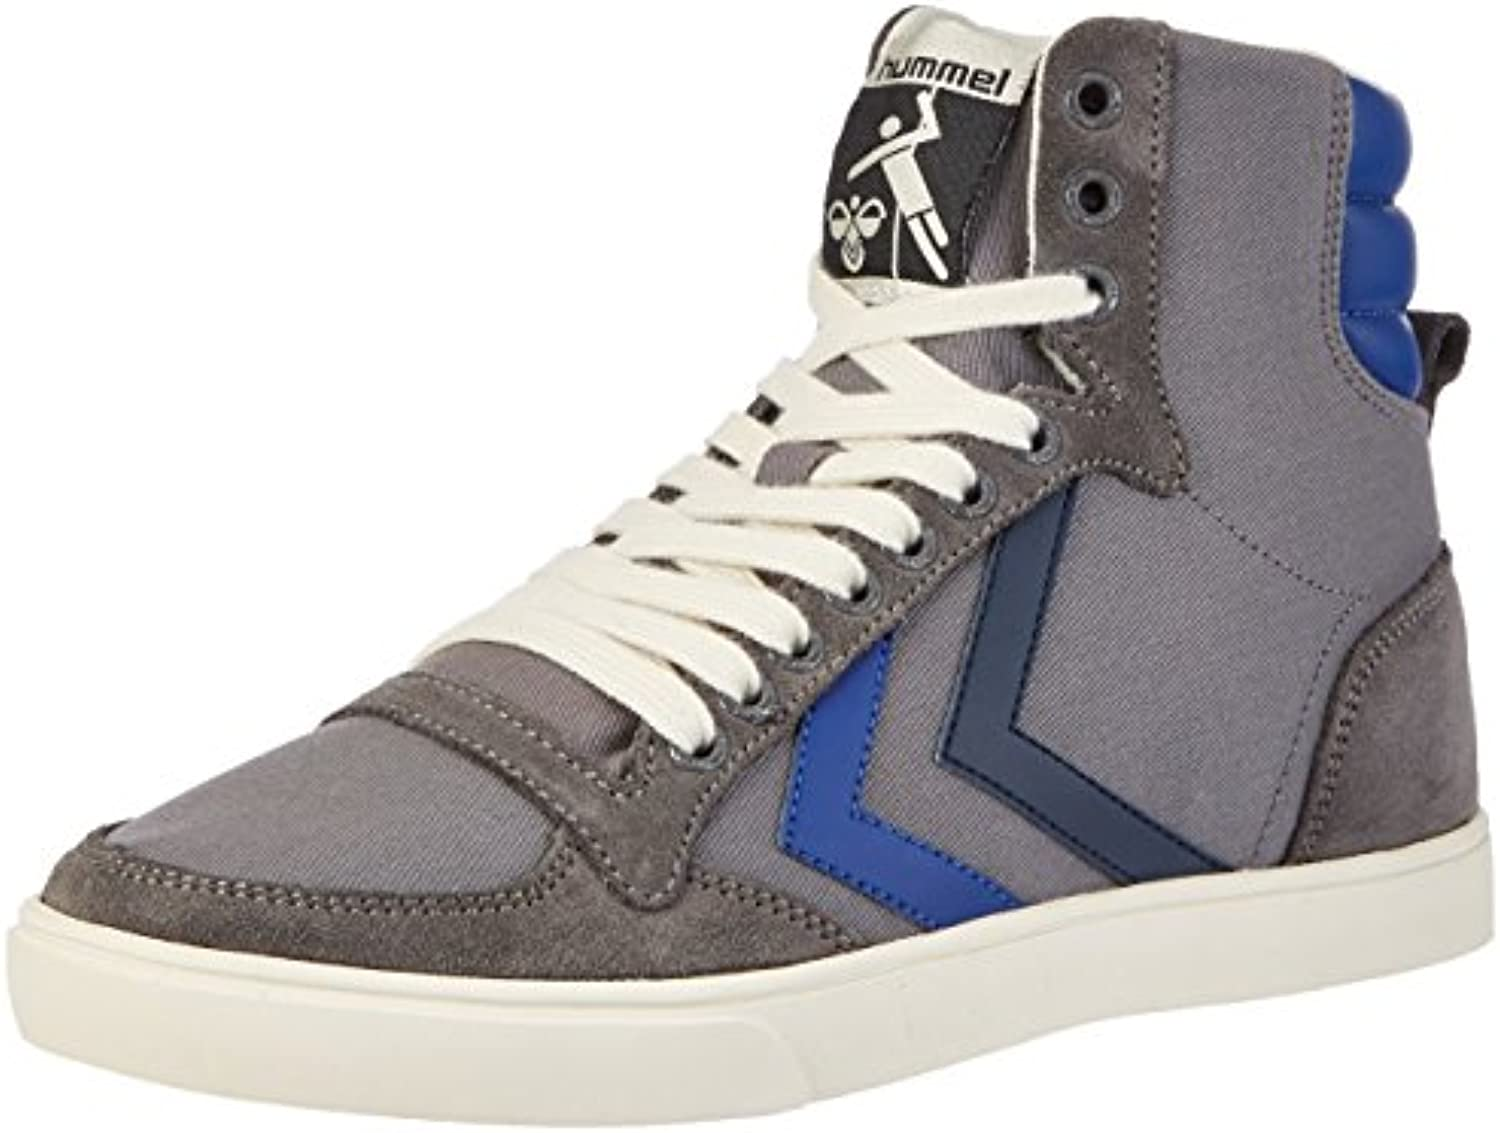 Hummel Unisex Erwachsene SL. Stadil Duo Canvas High Top